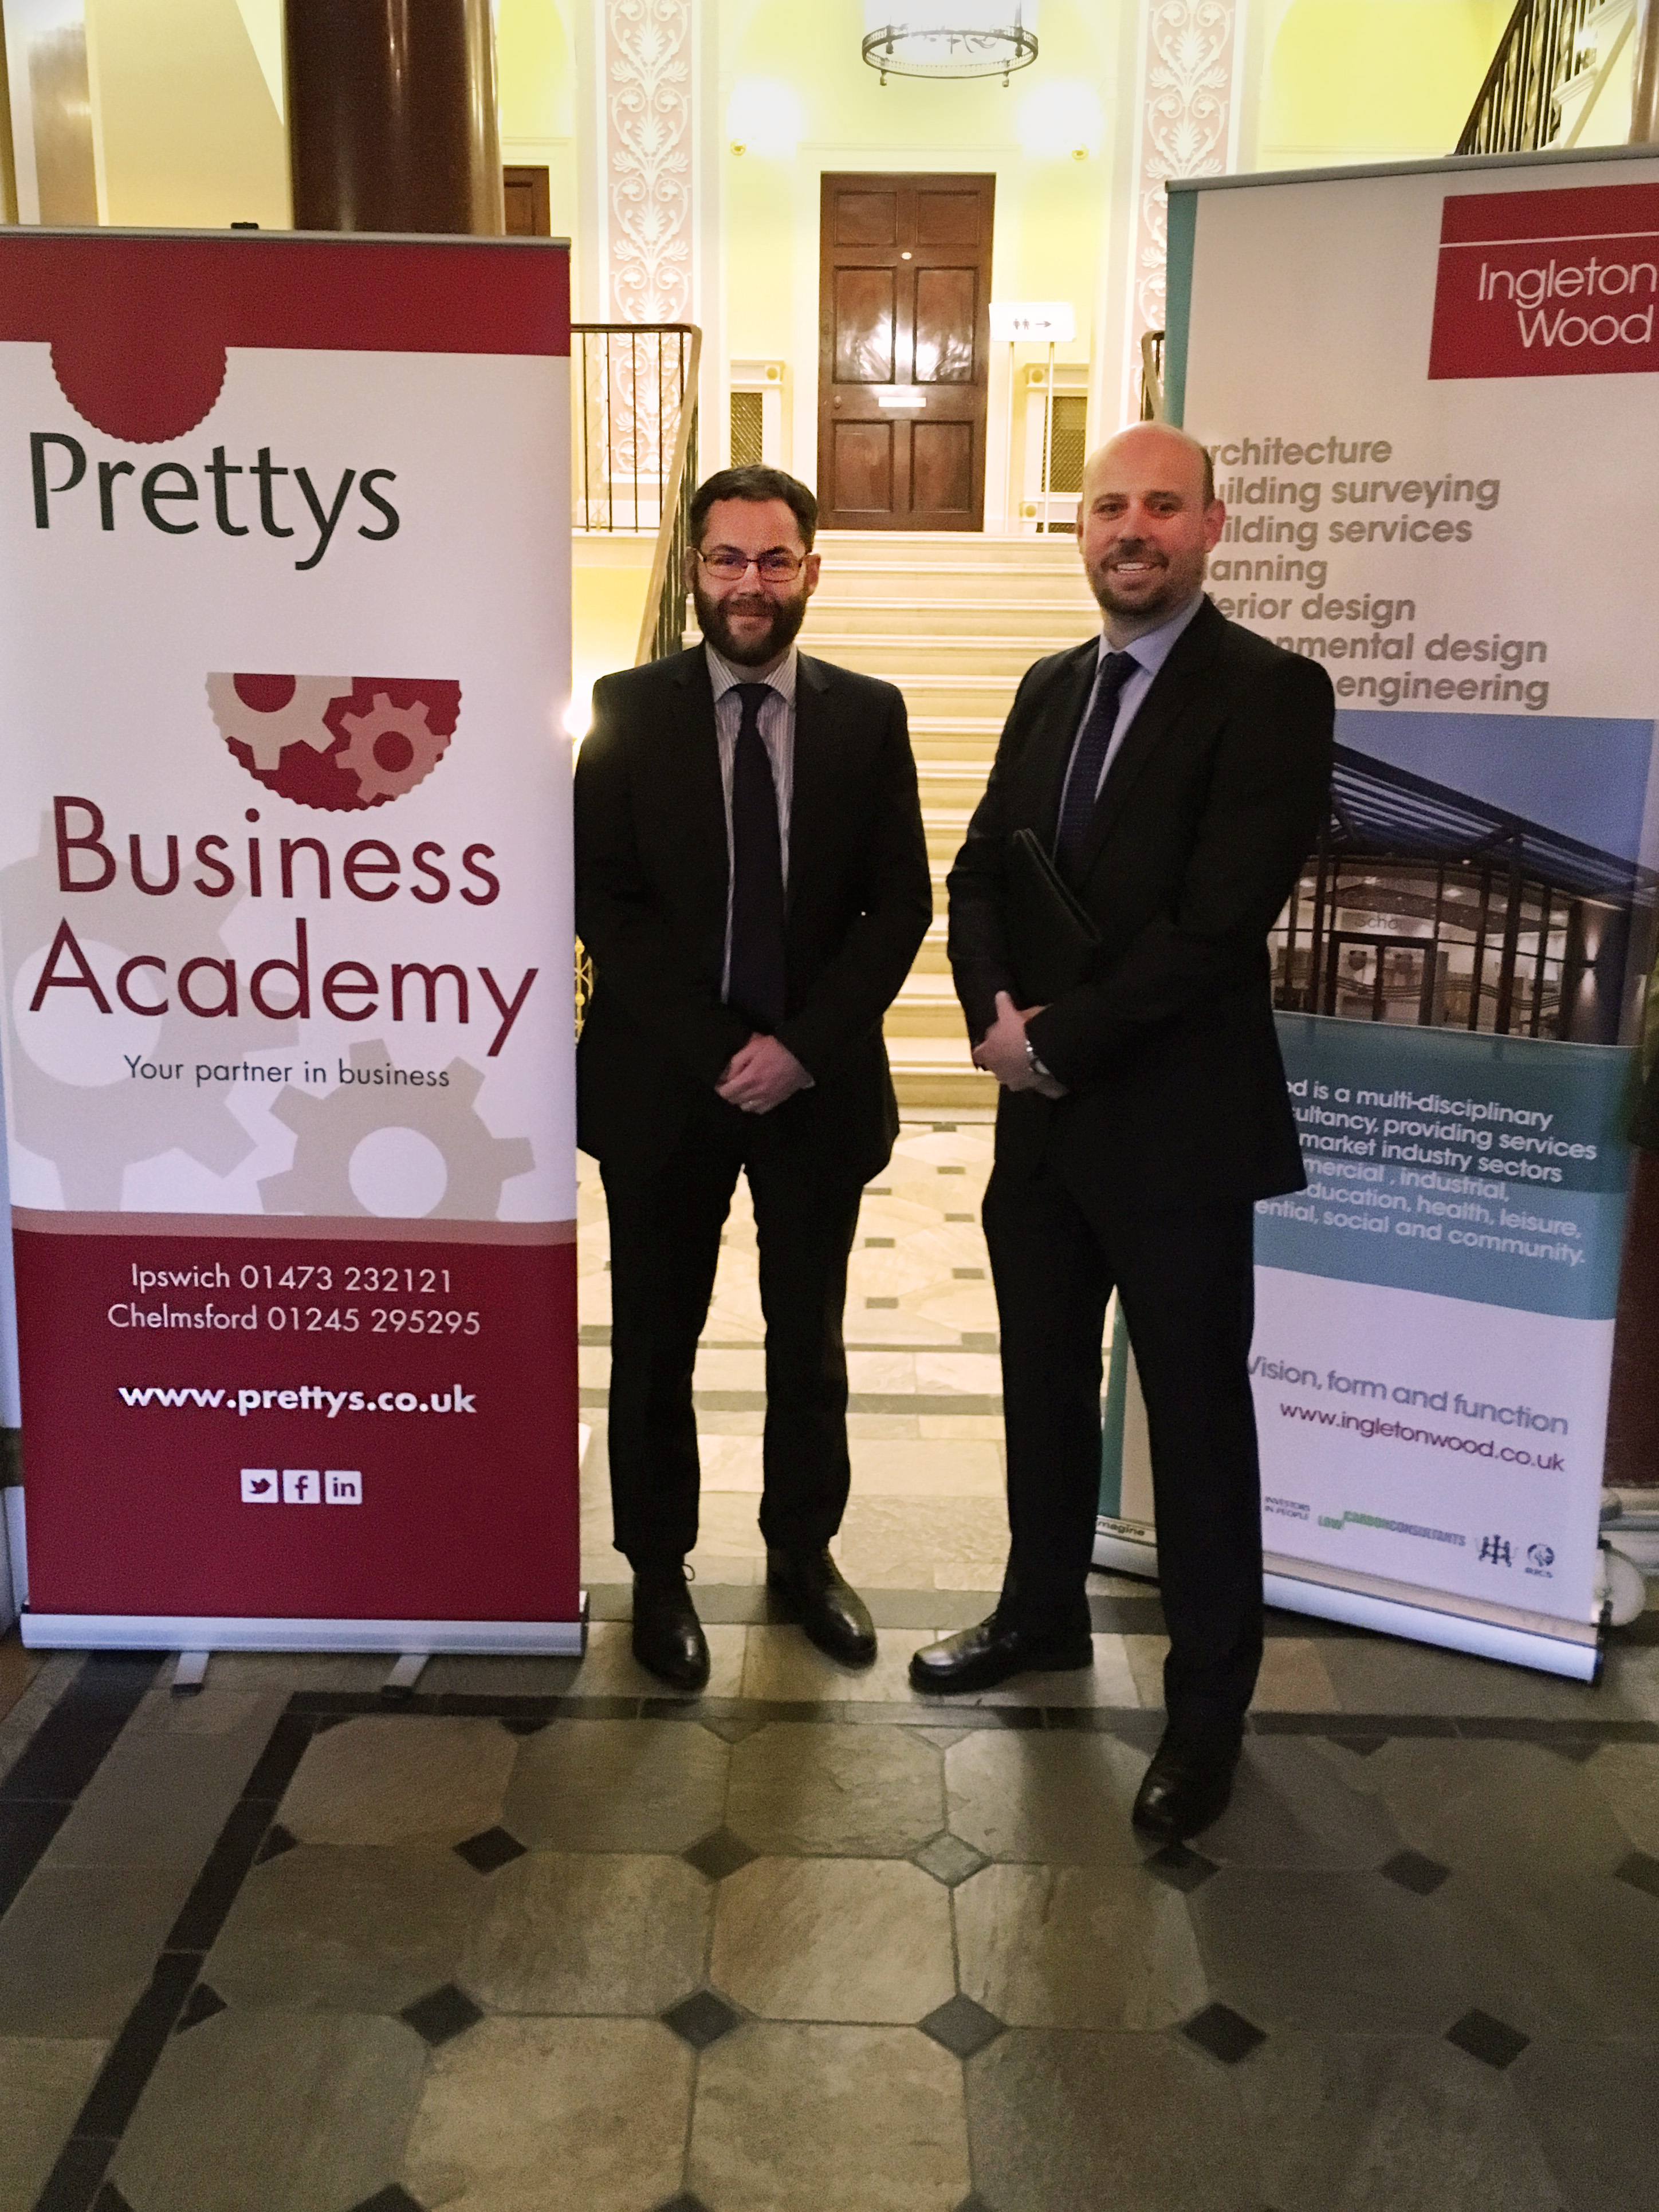 Ross Wiltshire (Prettys) and Scott Barlow (Ingleton Wood) at the Prettys Business Academy event